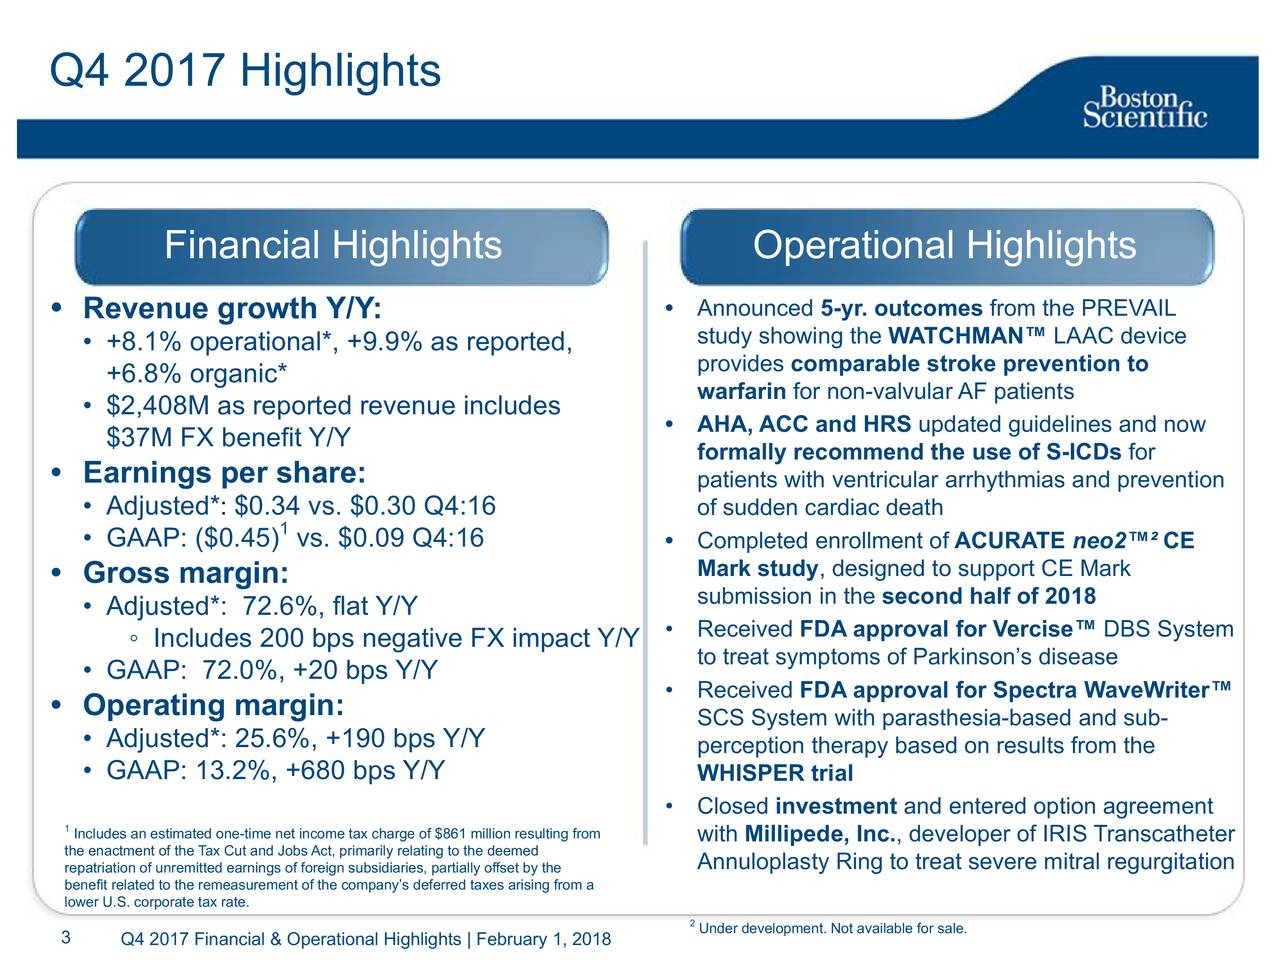 Financial Highlights Operational Highlights • Revenue growth Y/Y: • Announced 5-yr. outcomes from the PREVAIL study showing the WATCHMAN™ LAAC device • +8.1% operational*, +9.9% as reported, provides comparable stroke prevention to +6.8% organic* • $2,408M as reported revenue includes warfarin for non-valvular AF patients • AHA, ACC and HRS updated guidelines and now $37M FX benefit Y/Y formally recommend the use of S-ICDs for • Earnings per share: patients with ventricular arrhythmias and prevention • Adjusted* : $0.34 vs. $0.30 Q4:16 of sudden cardiac death 1 • GAAP: ($0.45) vs. $0.09 Q4:16 • Completed enrollment of ACURATE neo2™² CE • Gross margin: Mark study, designed to support CE Mark submission in the second half of 2018 • Adjusted*: 72.6%, flat Y/Y ◦ Includes 200 bps negative FX impact Y/Y • Received FDA approval for Vercise™ DBS System • GAAP: 72.0%, +20 bps Y/Y to treat symptoms of Parkinson's disease • Received FDA approval for Spectra WaveWriter™ • Operating margin: SCS System with parasthesia-based and sub- • Adjusted*: 25.6%, +190 bps Y/Y perception therapy based on results from the • GAAP: 13.2%, +680 bps Y/Y WHISPER trial • Closed investment and entered option agreement 1Includes an estimated one-time net income tax charge of $861with Millipede, Inc., developer of IRIS Transcatheter repatriation of unremitted earnings of foreign subsidiaries, partially offset by theeat severe mitral regurgitation benefit related to the remeasurement of the company's deferred taxes arising from a lower U.S. corporate tax rate. 3 Q4 2017 Financial & Operational Highlights | February 1, 2018development. Not available for sale.